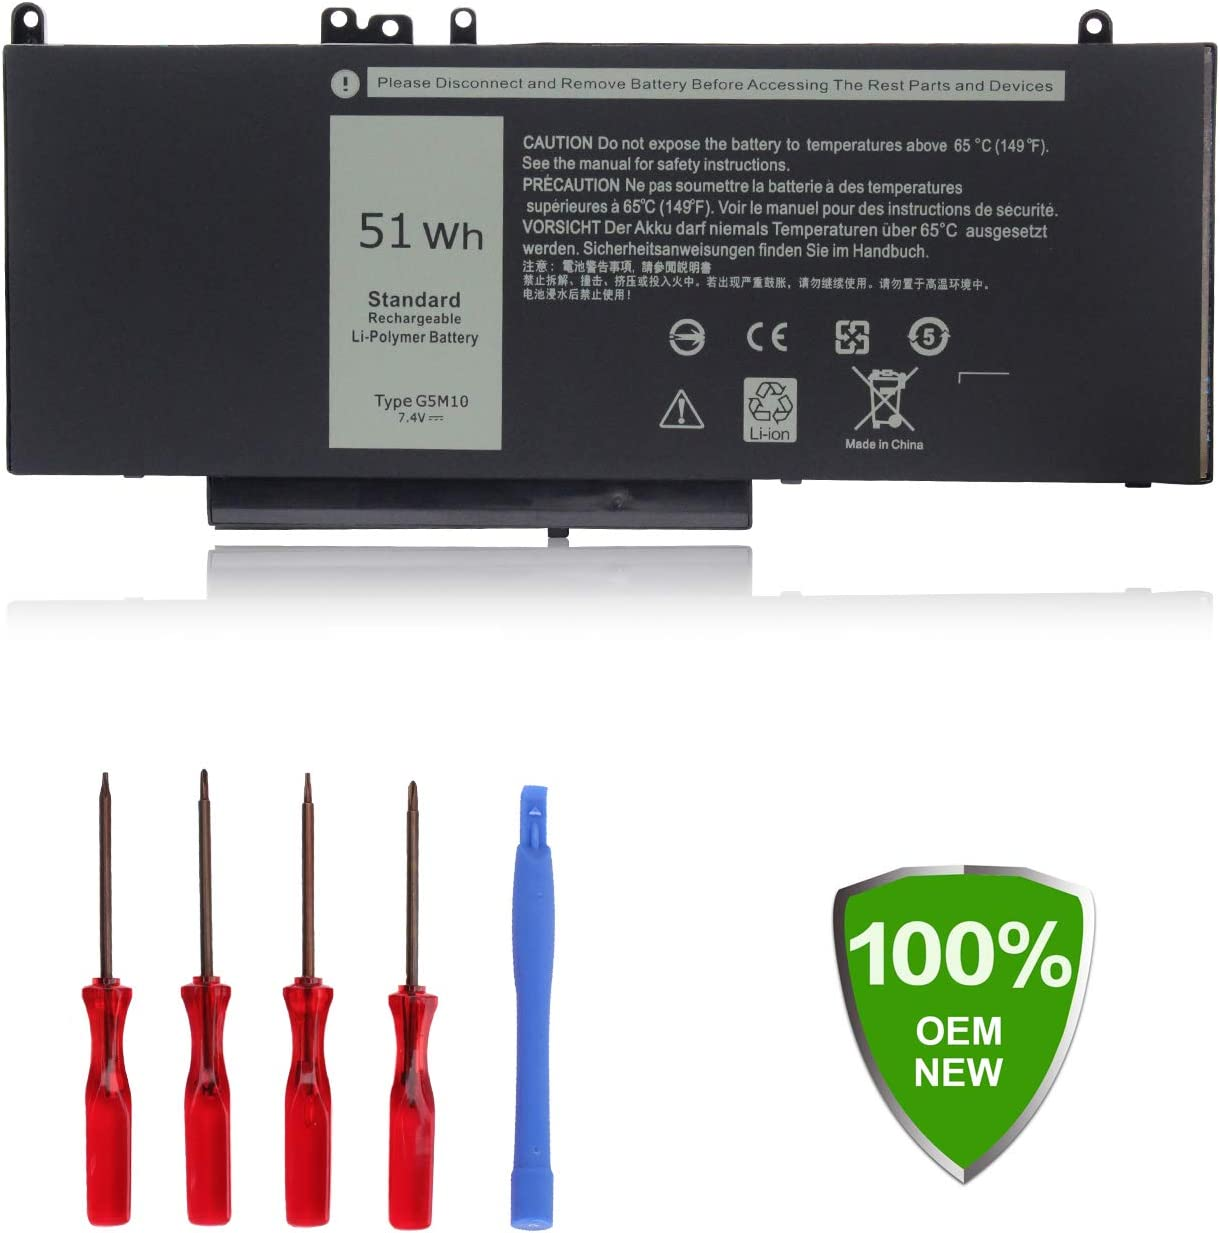 Ouside G5M10 R0TMP Battery Compatible with Dell LatitudeE5450 E5550 7V69Y 6MT4T R9XM9 WYJC2 1KY05 8V5GX 79VRK TXF9M WYJC2 0WYJC2 08V5GX Notebook Battery [ 7.4V 51Wh 4Cell]